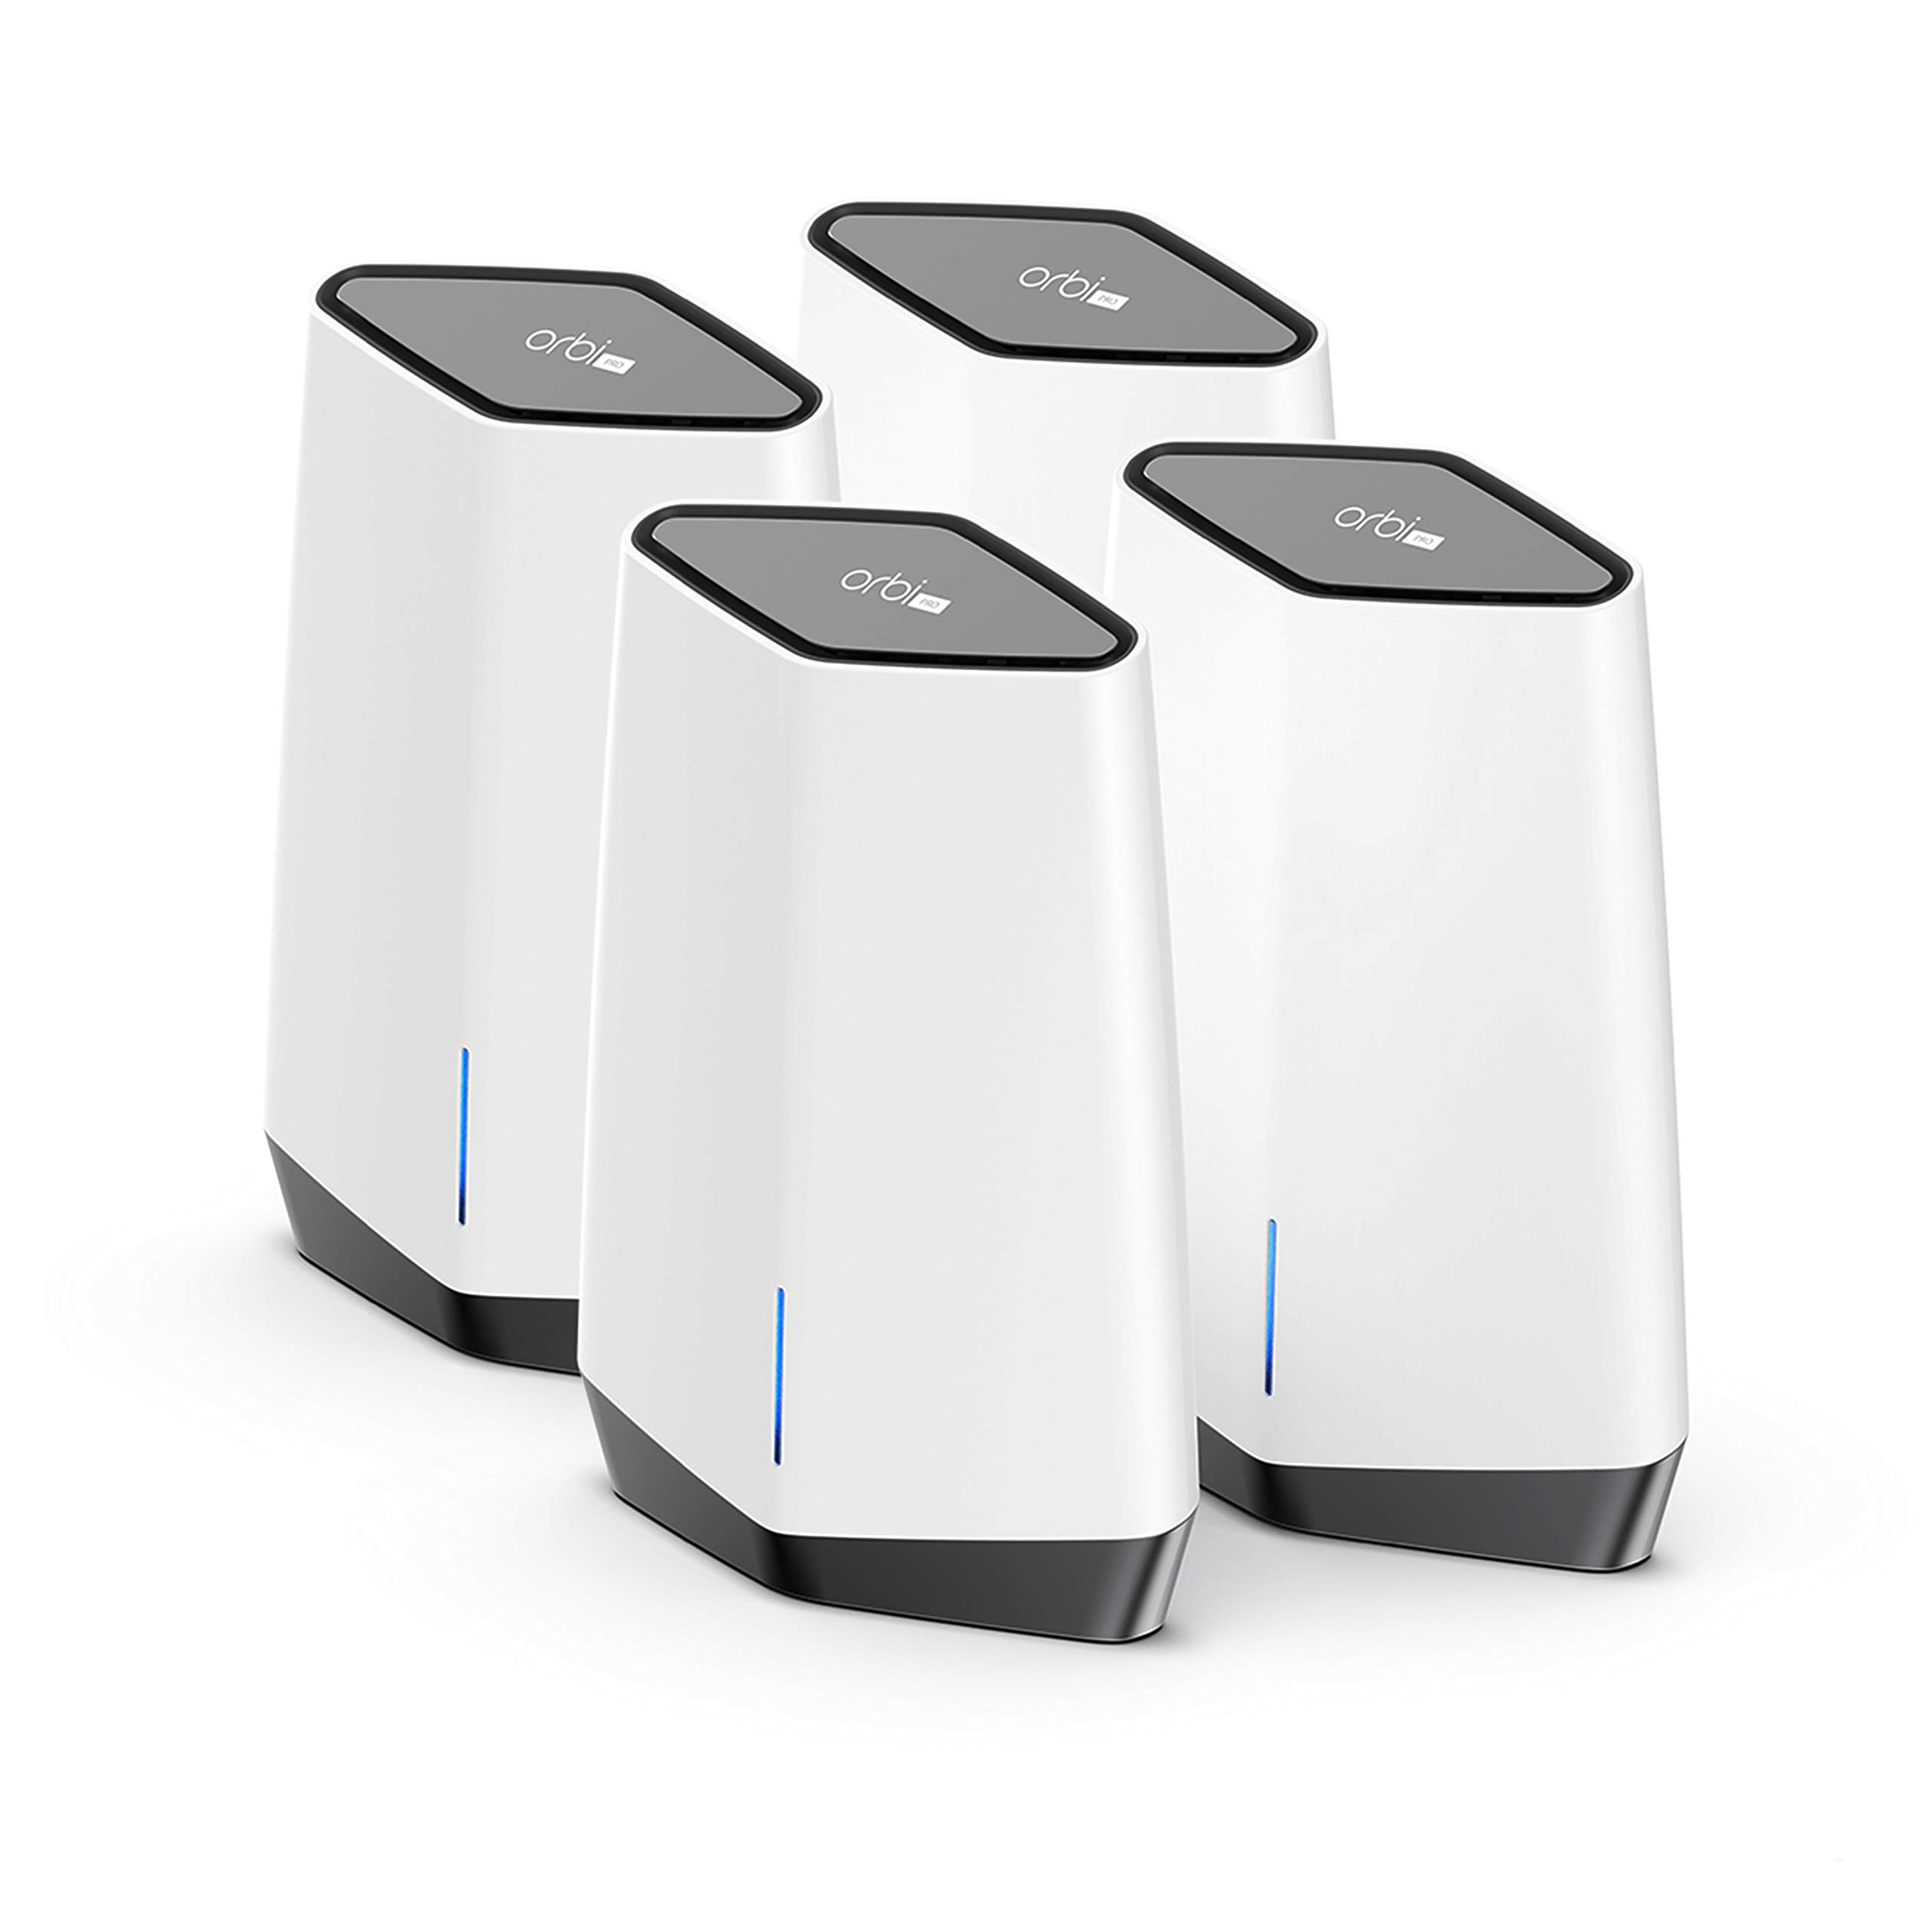 NETGEAR Orbi Pro WiFi 6 Tri-Band Mesh System (SXK80B4)   Router with 3 Satellite Extenders for Business or Home   Coverage up to 12,000 sq. ft. and 60+ Devices   AX6000 802.11 AX (up to 6Gbps)